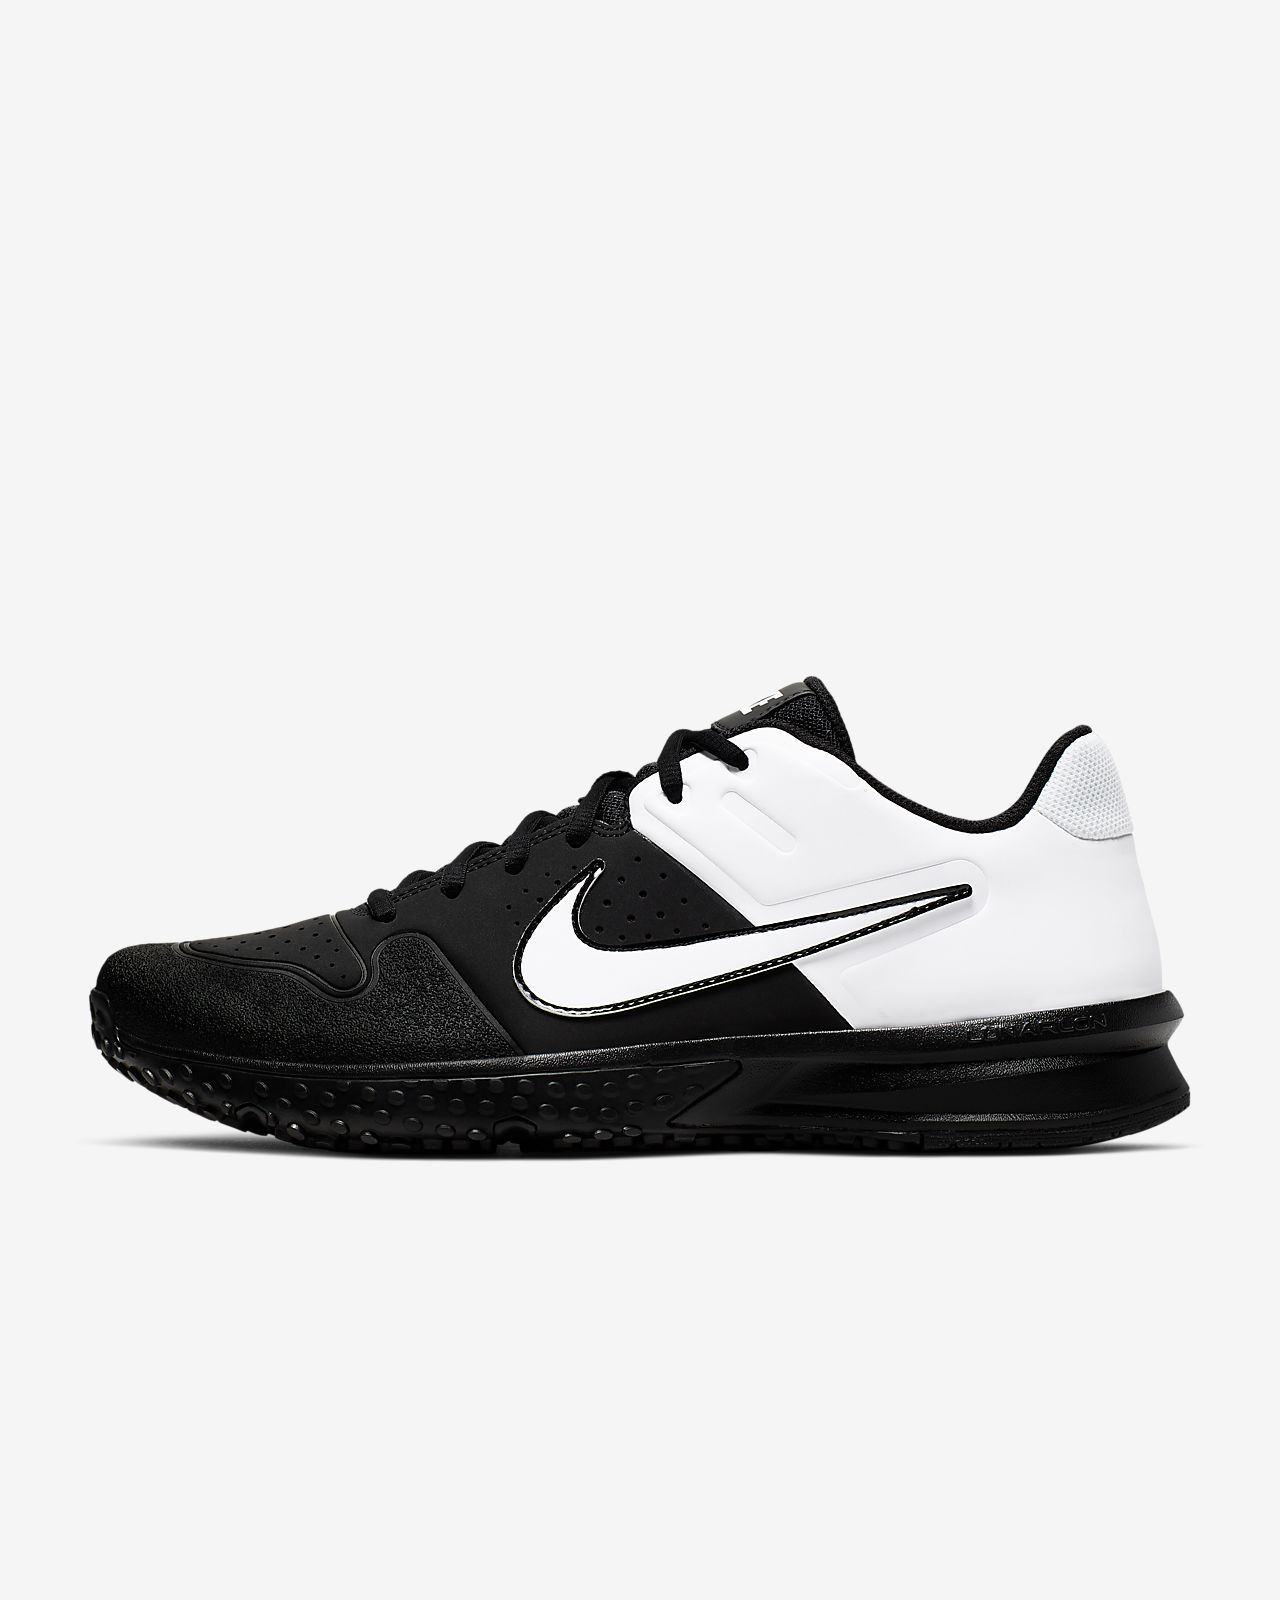 represa asistencia esta  Nike Baseball Coaches Shoes | Baseball cleats, Huaraches, Turf shoes